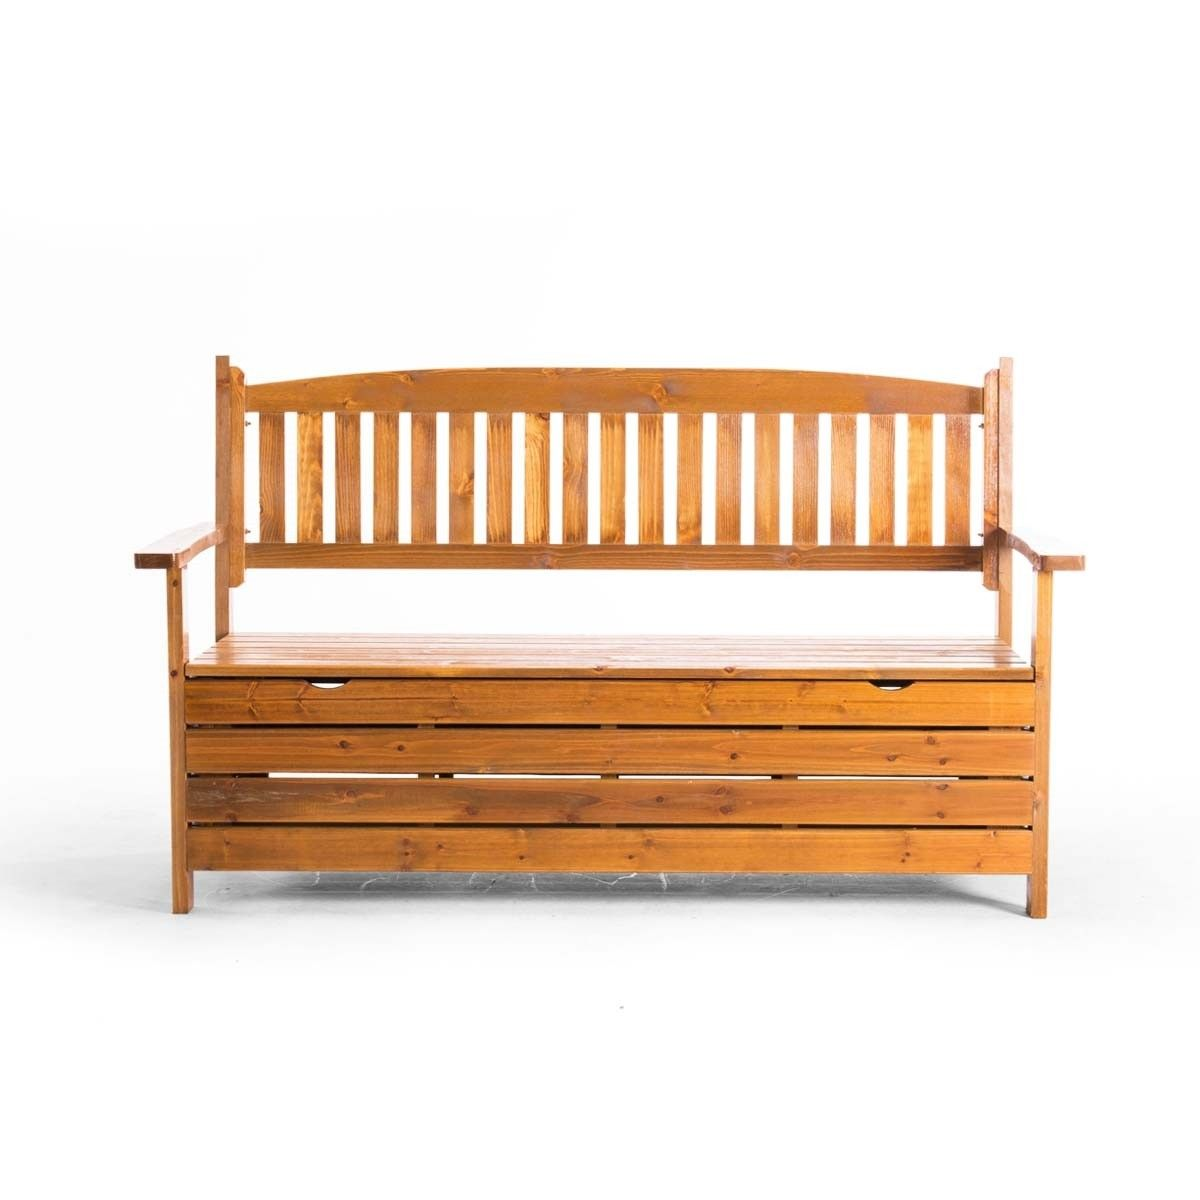 Swell 1 5M Wooden Storage Bench Garden Chest Inzonedesignstudio Interior Chair Design Inzonedesignstudiocom